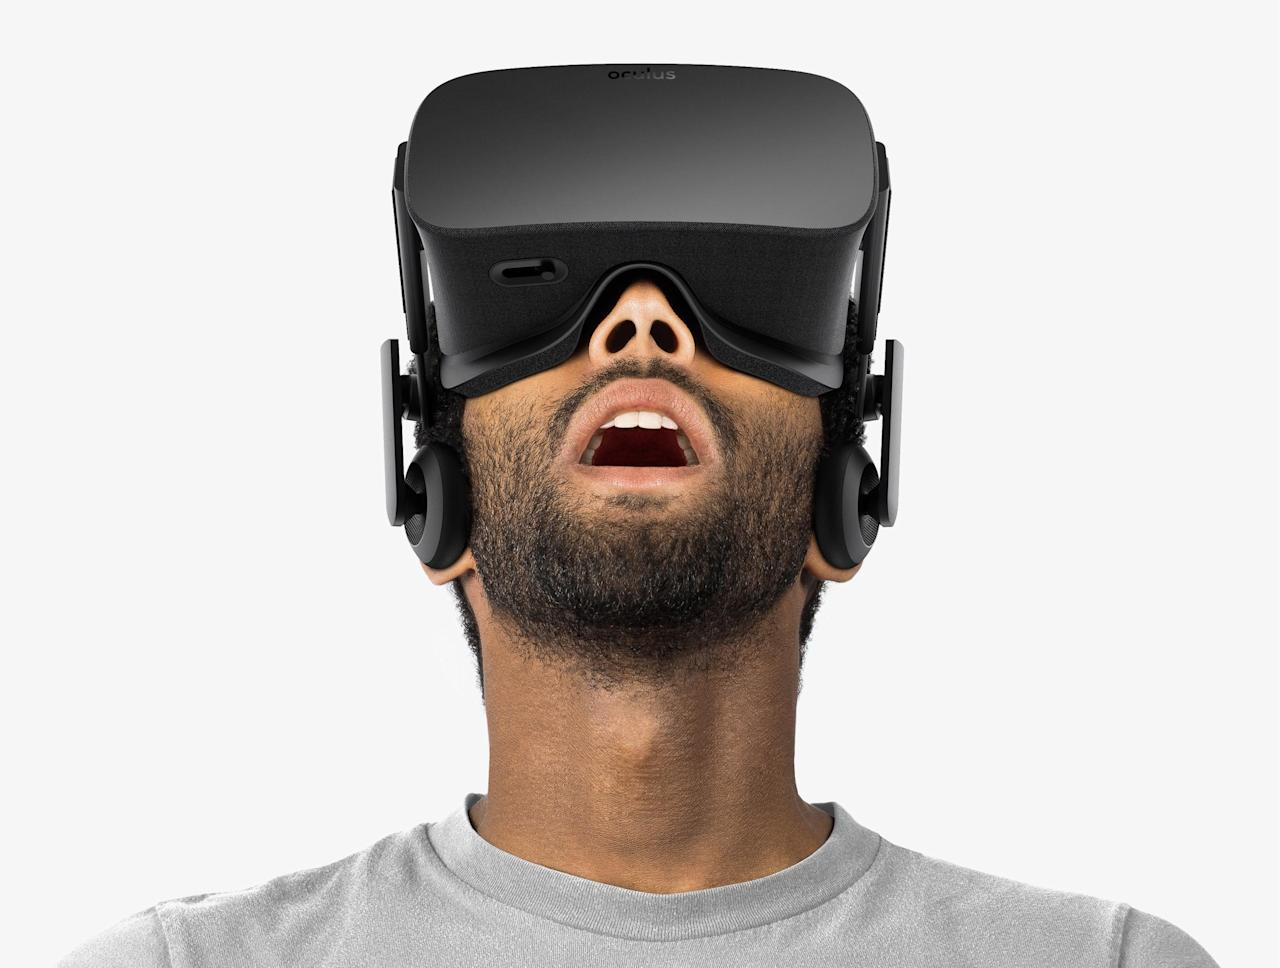 c40f44a18d4 Virtual reality gift guide